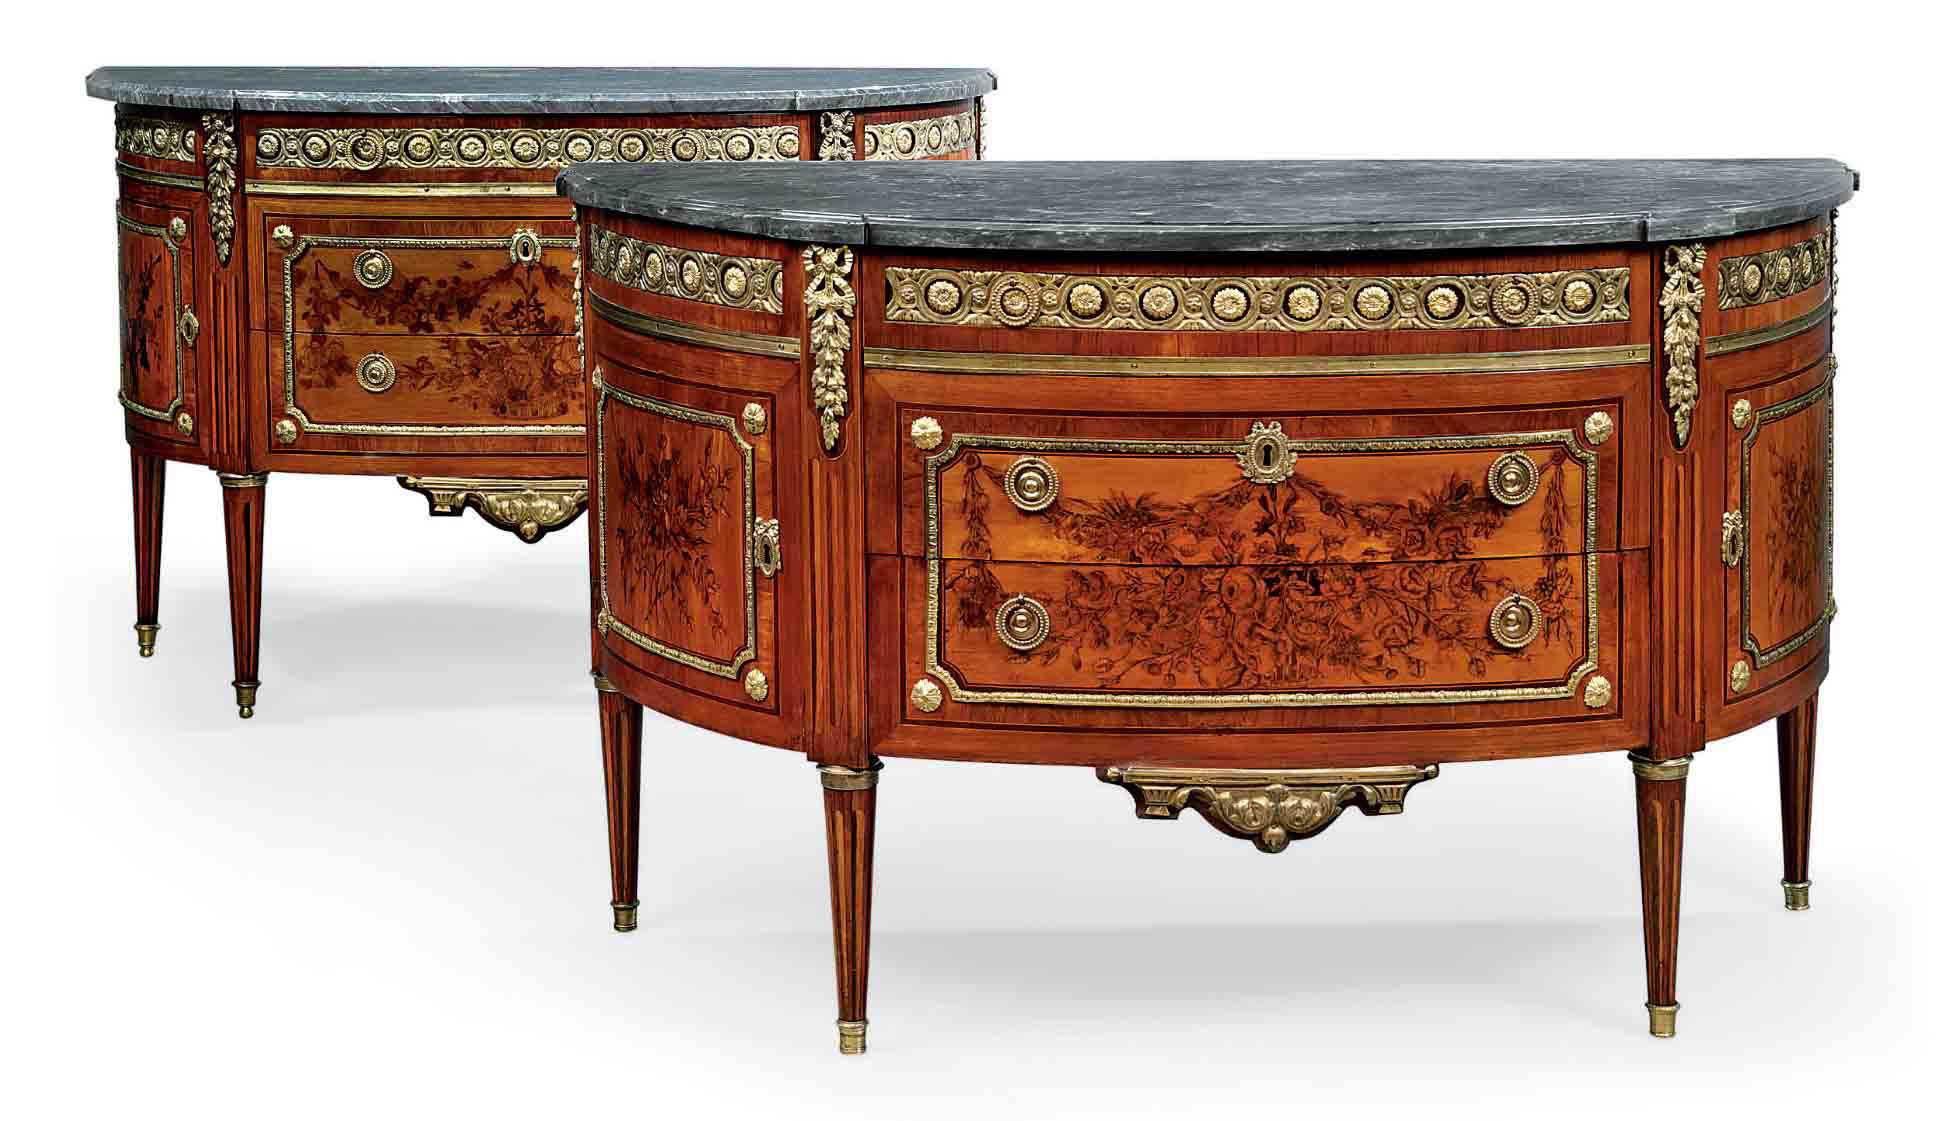 A MATCHED PAIR OF LOUIS XVI ORMOLU-MOUNTED TULIPWOOD AND MARQUETRY COMMODES